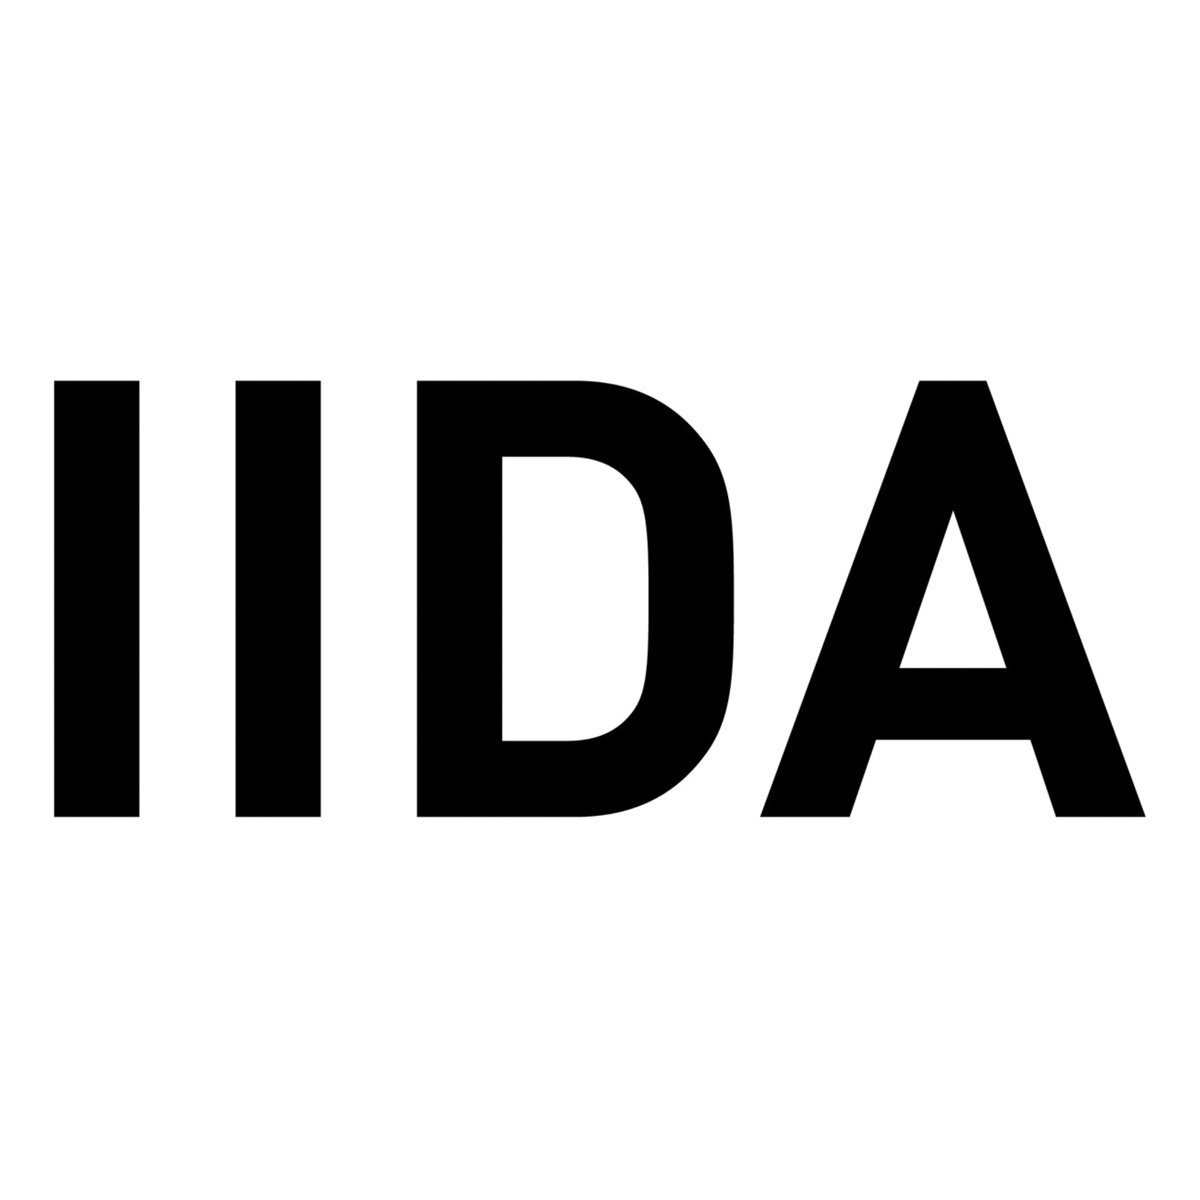 IIDA Announces Matrix Design as 2018 Best of Asia Pacific Design Awards Best of Competition Winner